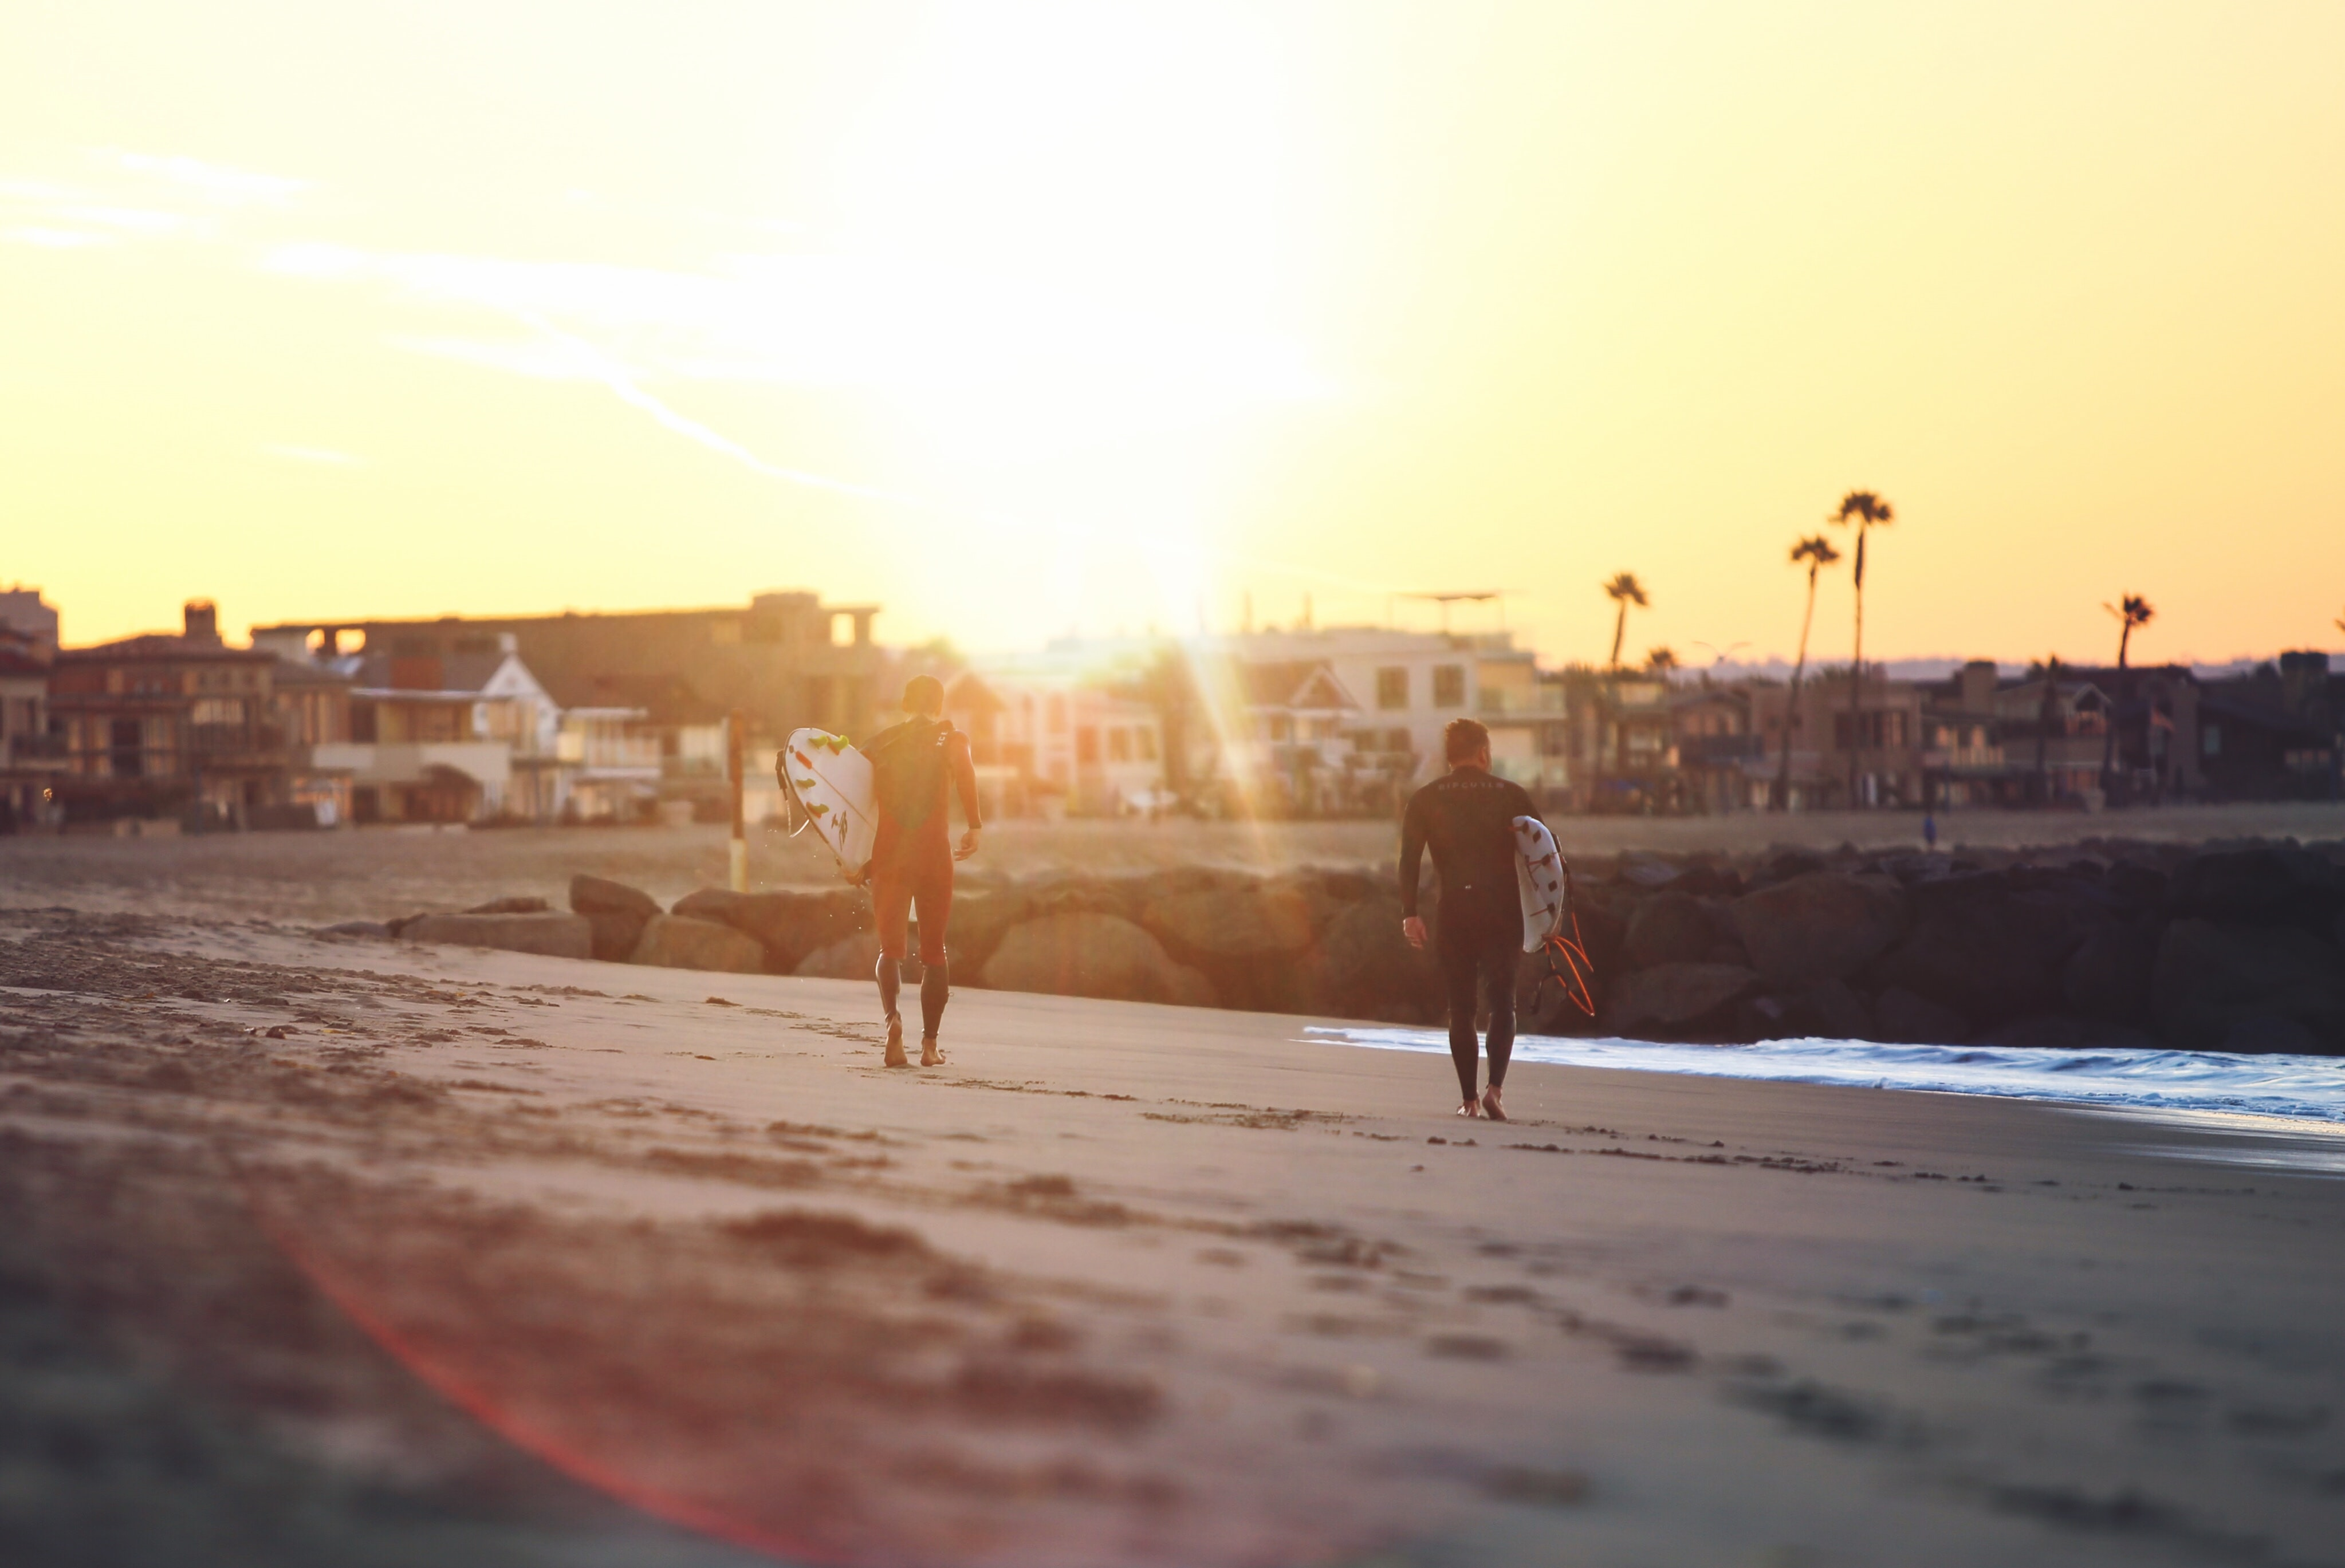 two person walking on seashore while holding surfboards